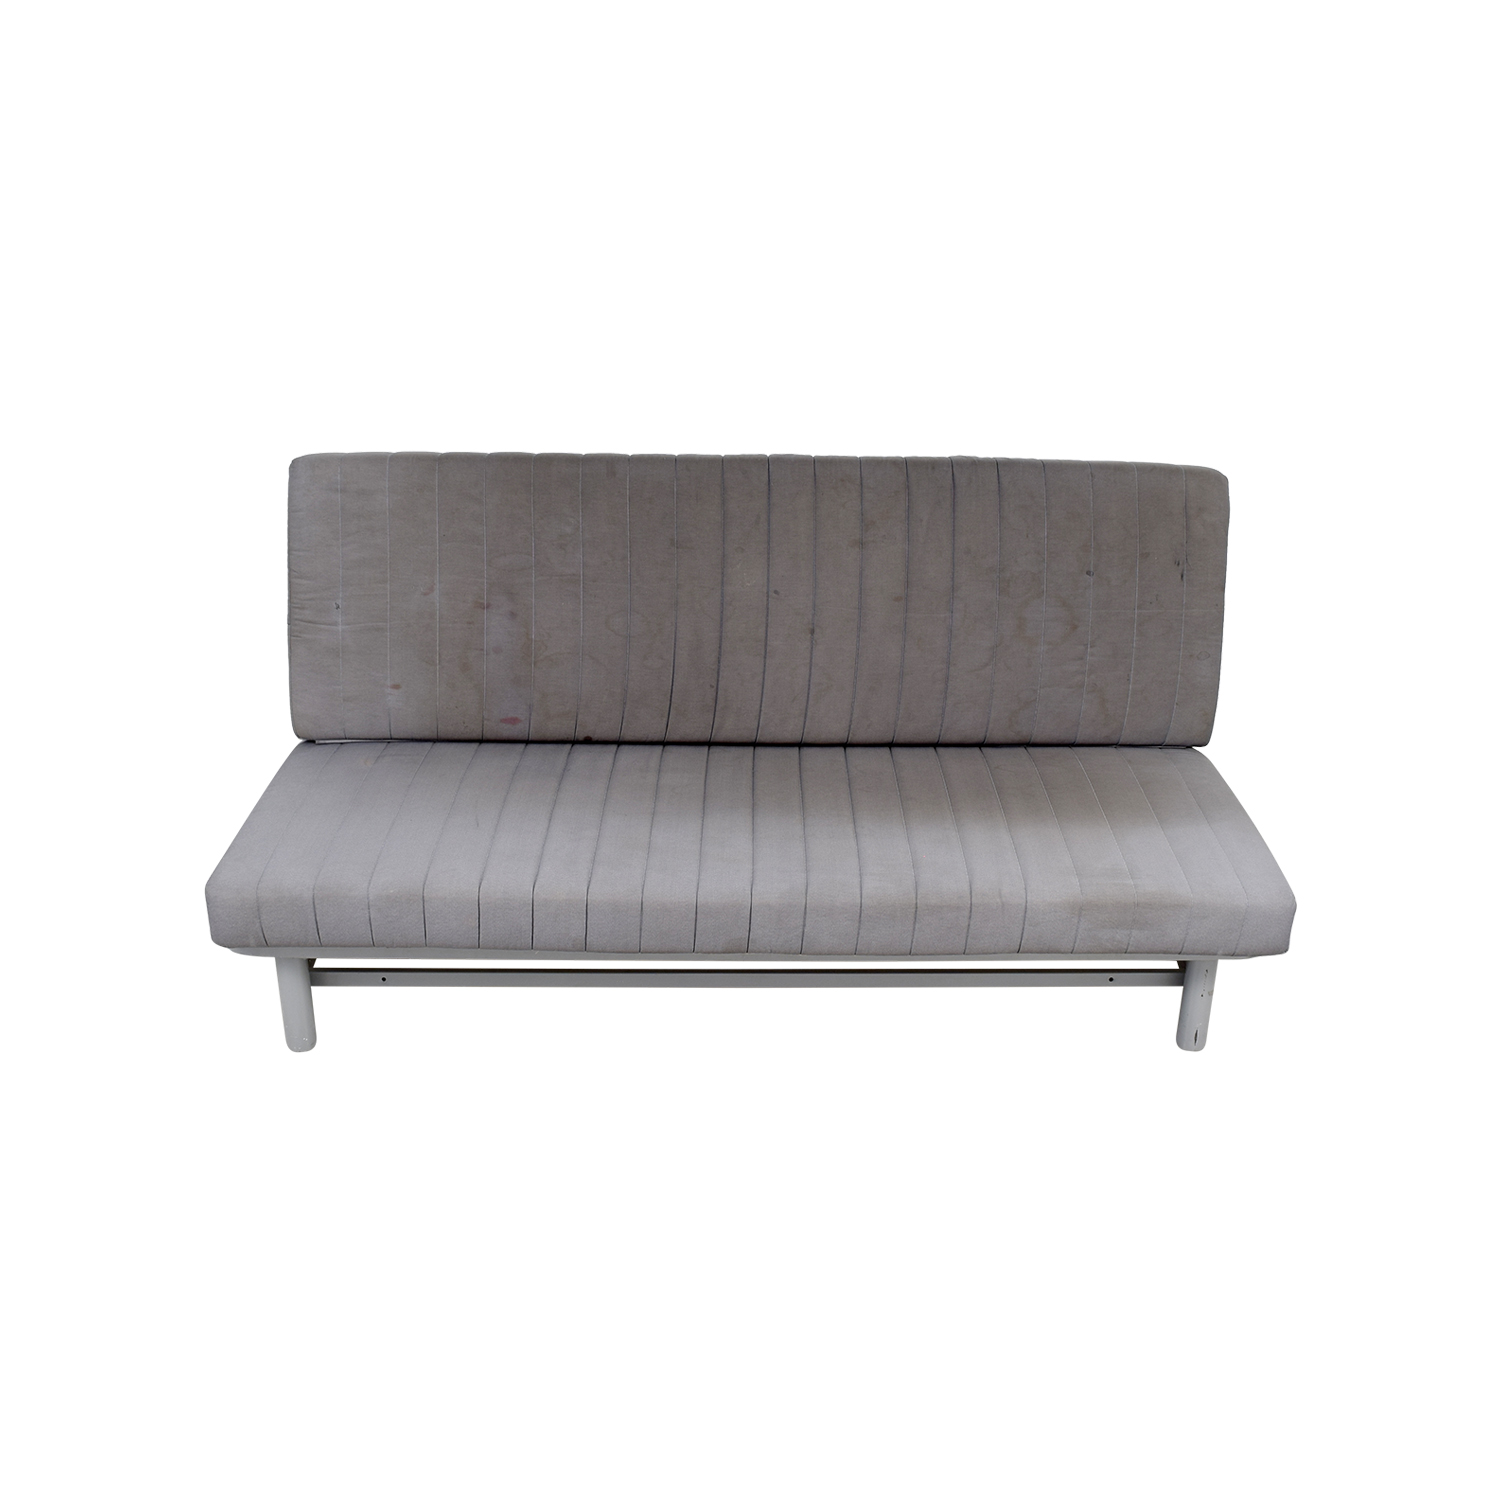 Sofa bed price junior fibre sofa bed bedore thesofa for Sofa bed ikea malaysia